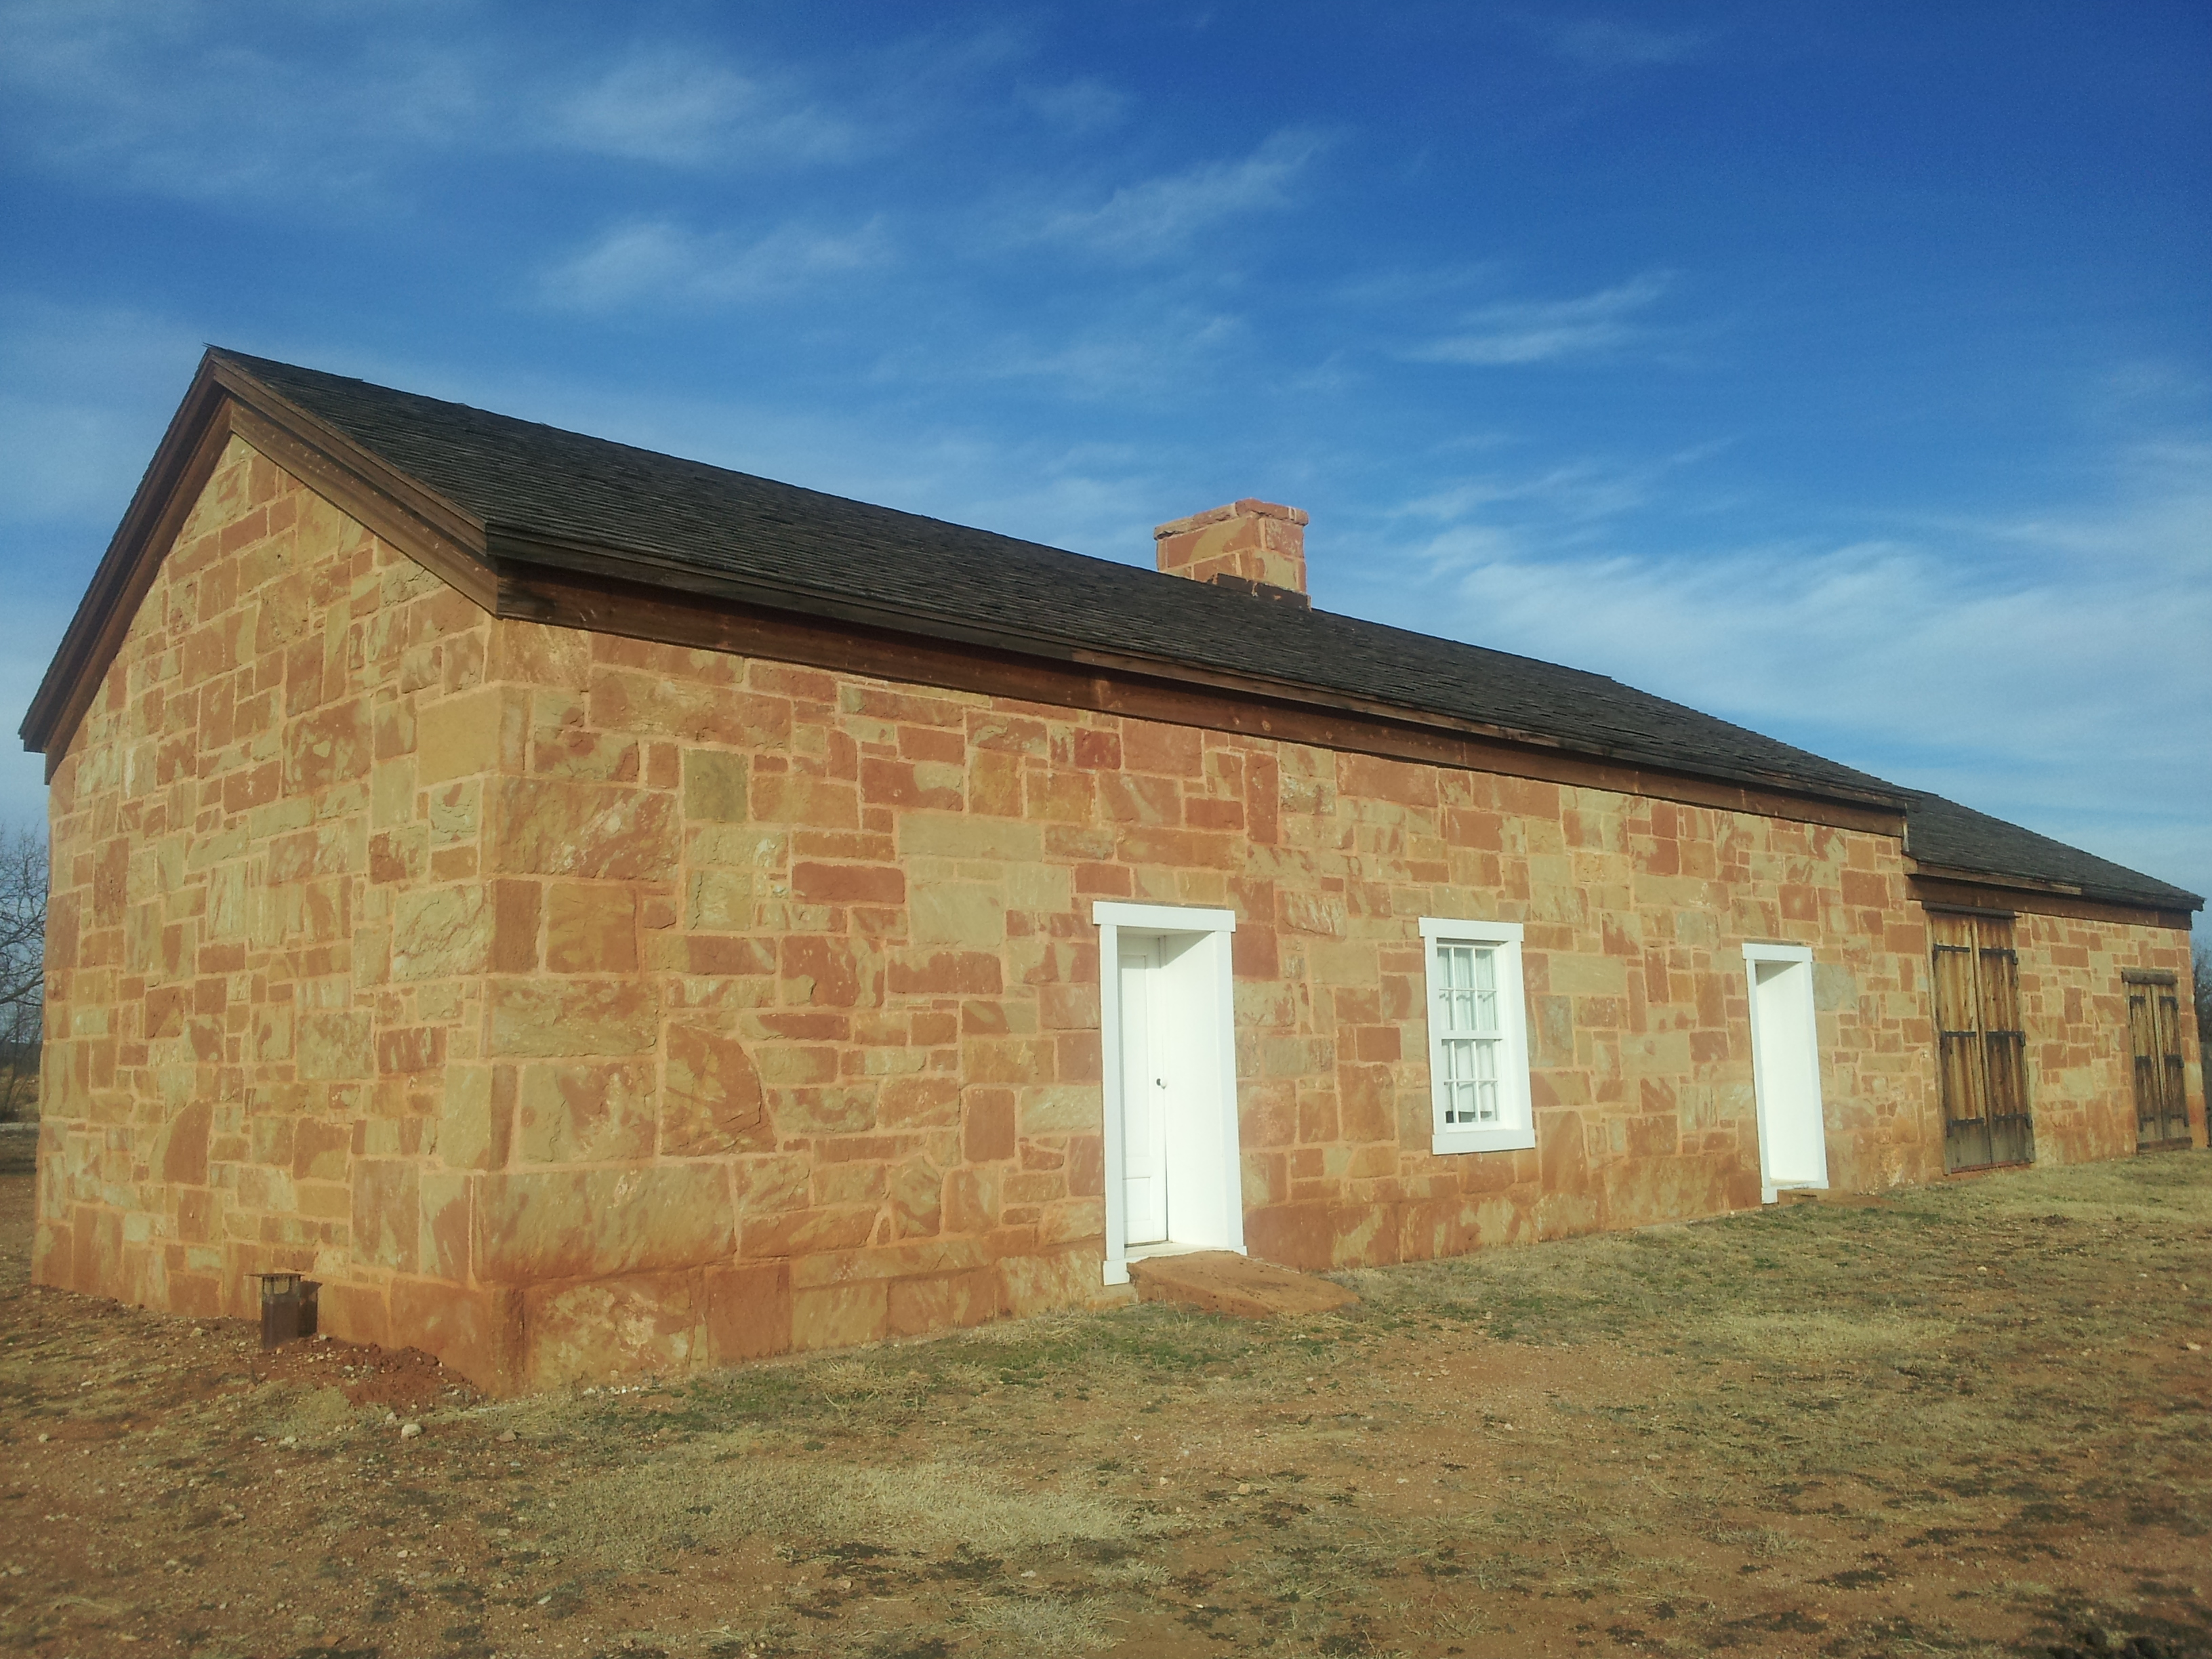 Reconstructed Overland Mail stage station at Fort Chadbourne, Texas. Photo taken on January 4, 2010